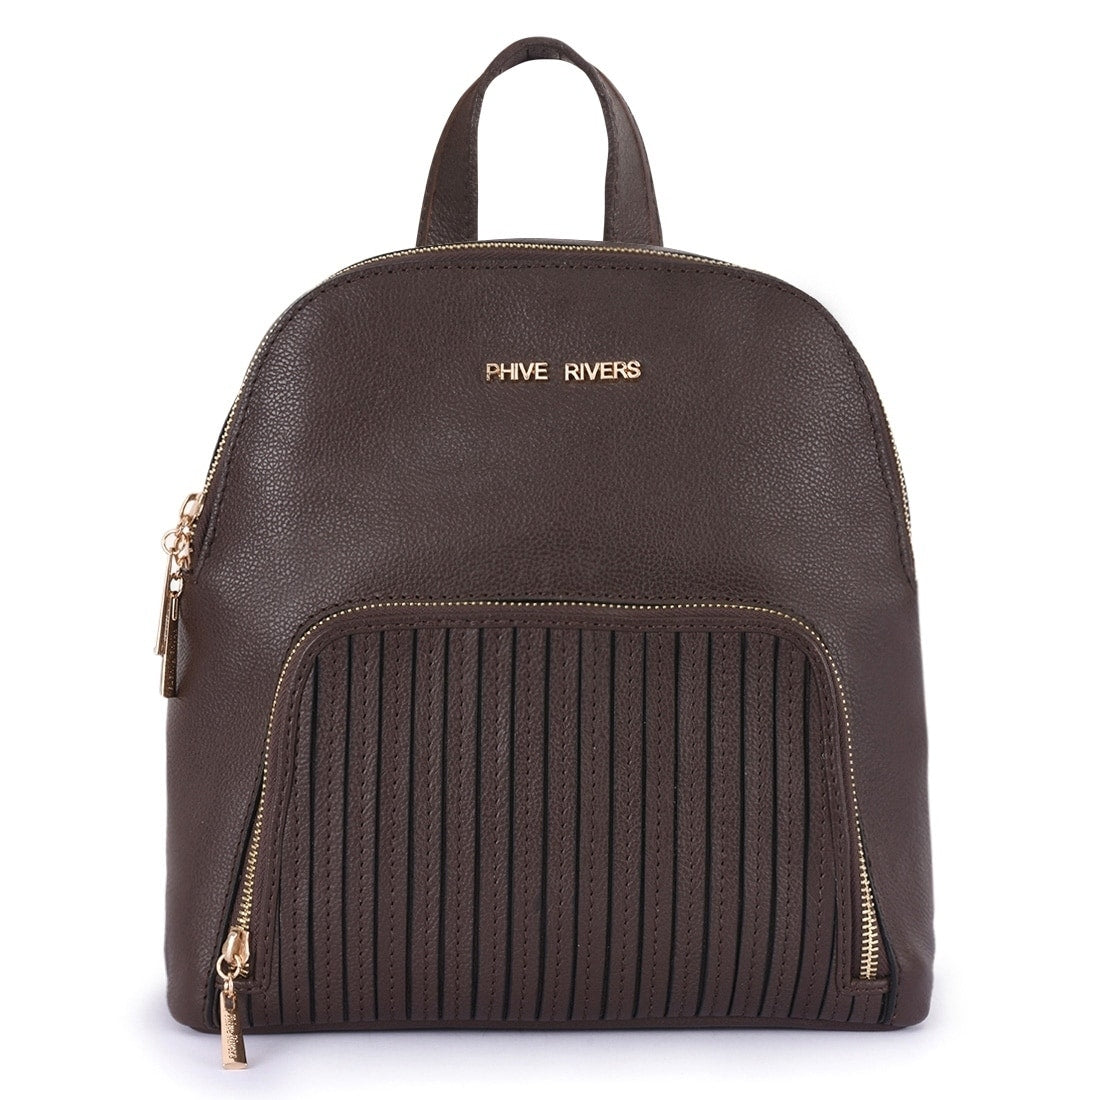 Phive Rivers Women's Leather Brown Backpack